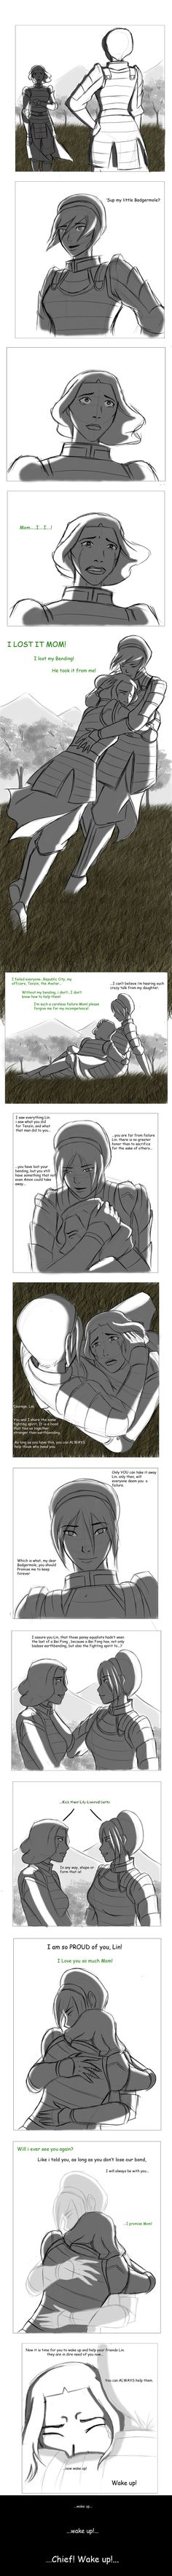 PART 2 - Knowing Destiny - by ~mizzizabellaSMS on deviantART Click pin so you can read what the comic says. My heart is in a billion tiny pieces on the floor.